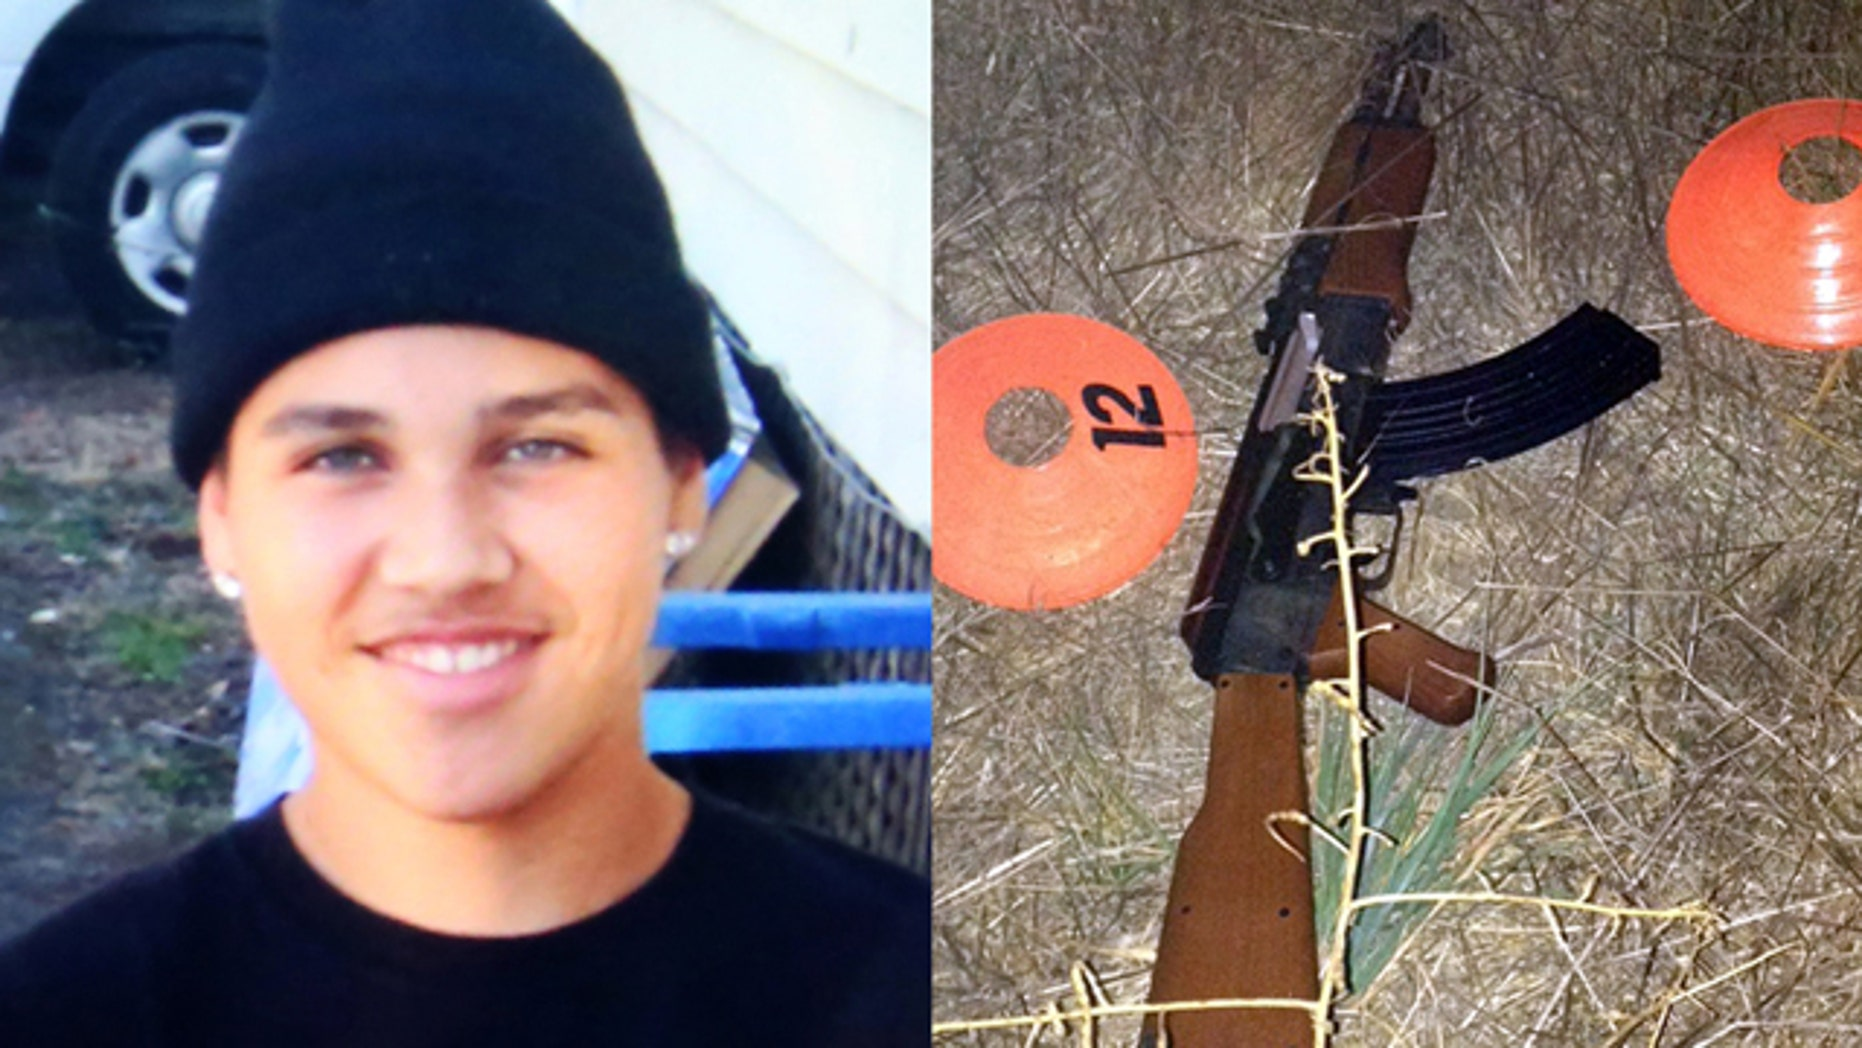 13-year-old Andy Lopez and the toy assault rifle that he was carrying when he was shot dead in Santa Rosa.